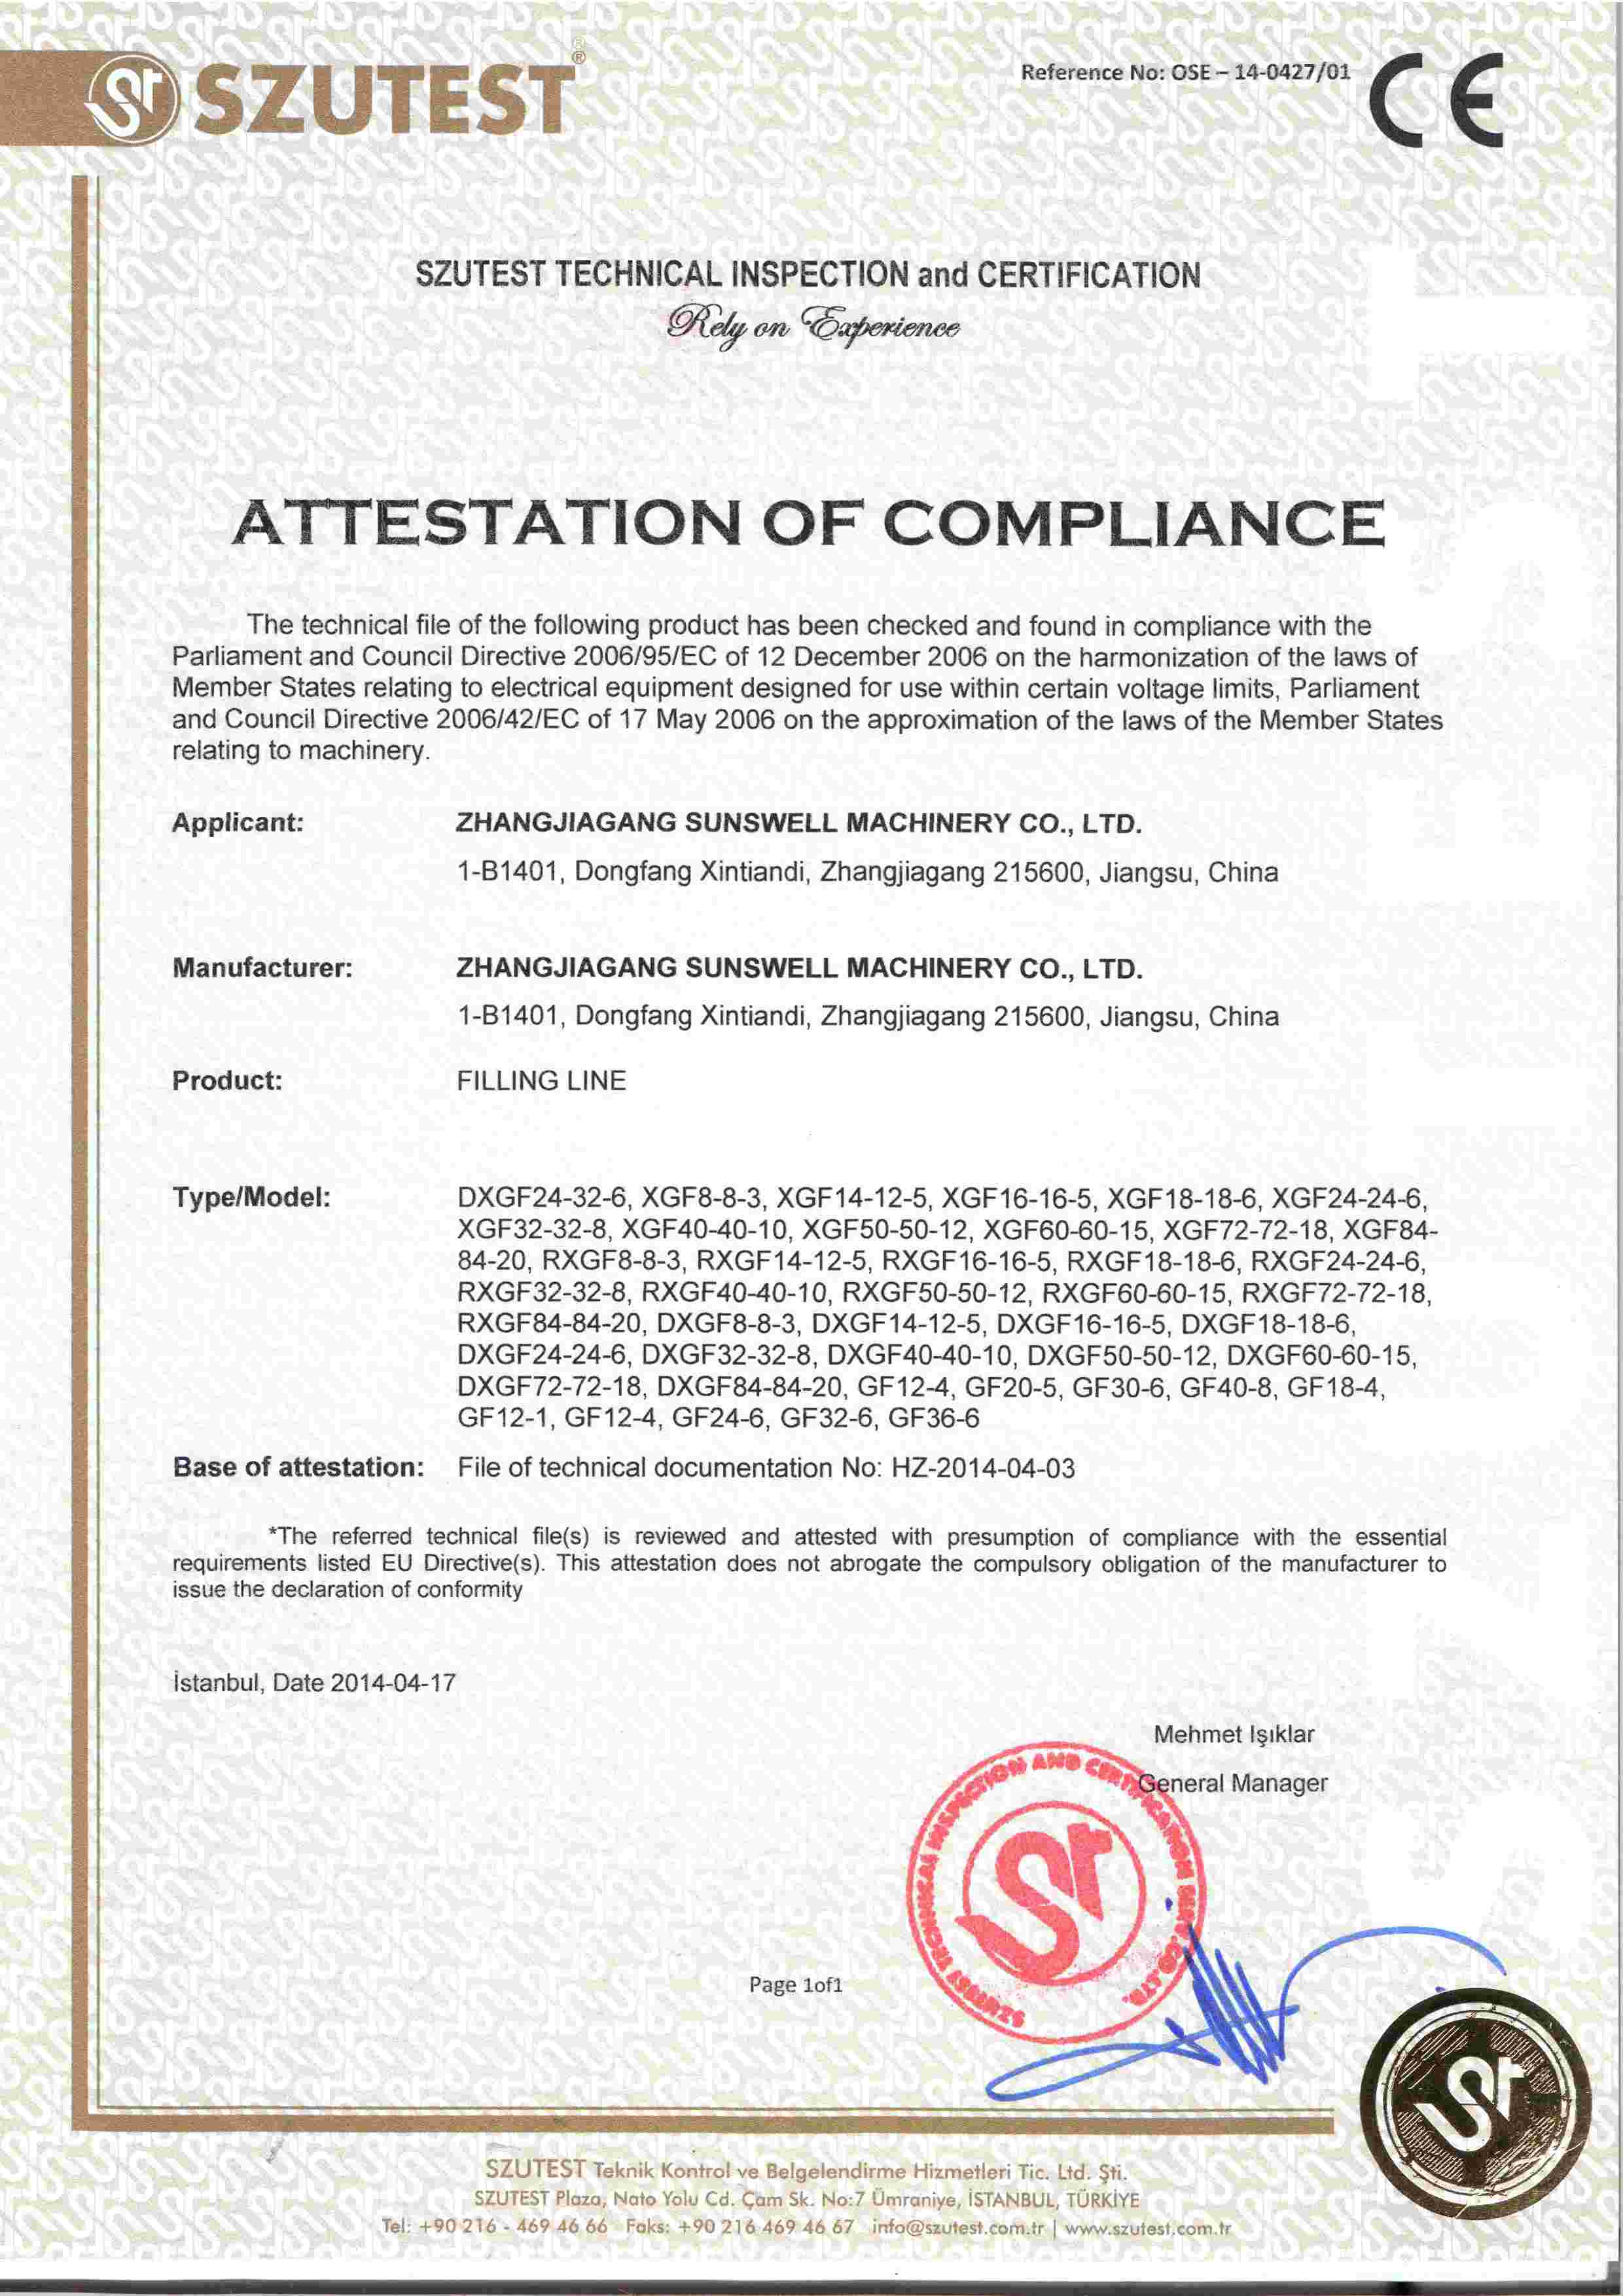 CE-Certificate of Conformity for Filling Line